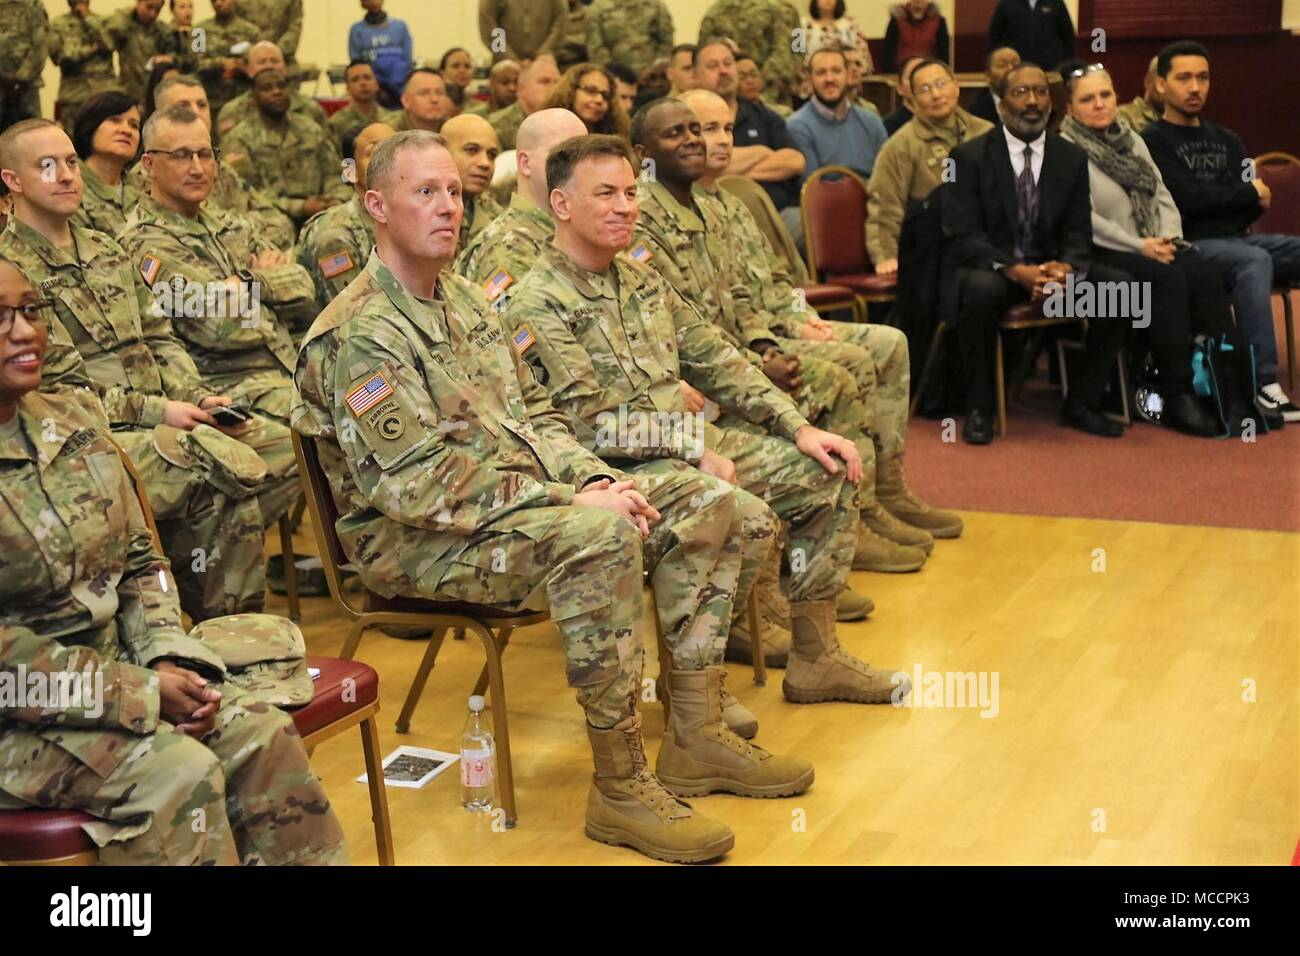 Col William S Galbraith High Resolution Stock Photography And Images Alamy